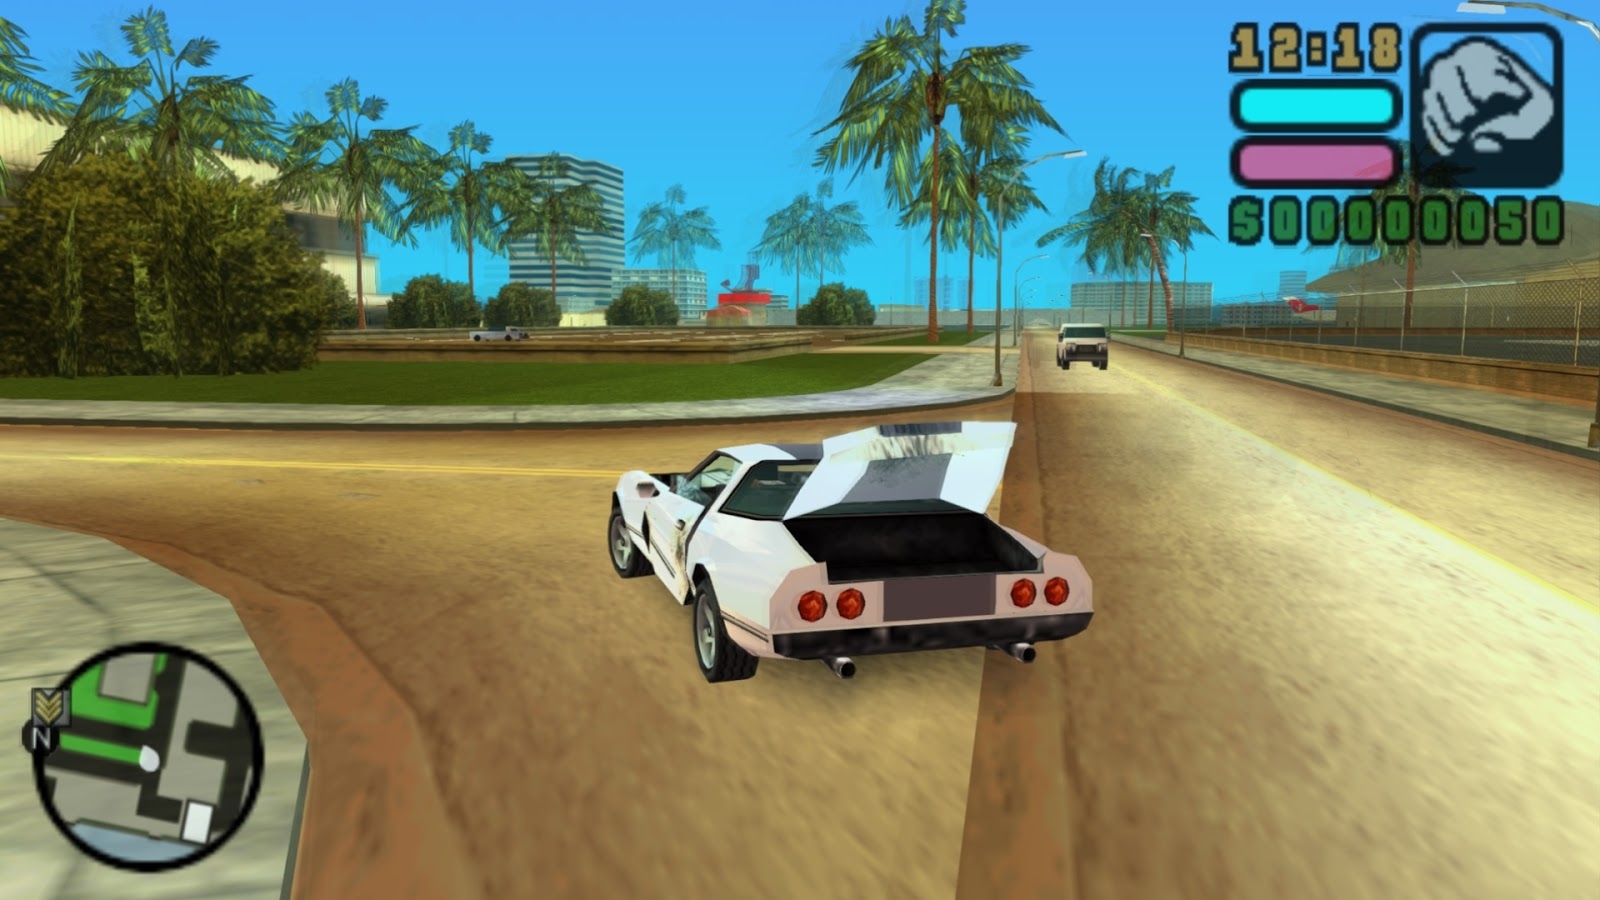 gta vice city stories download pc free full version